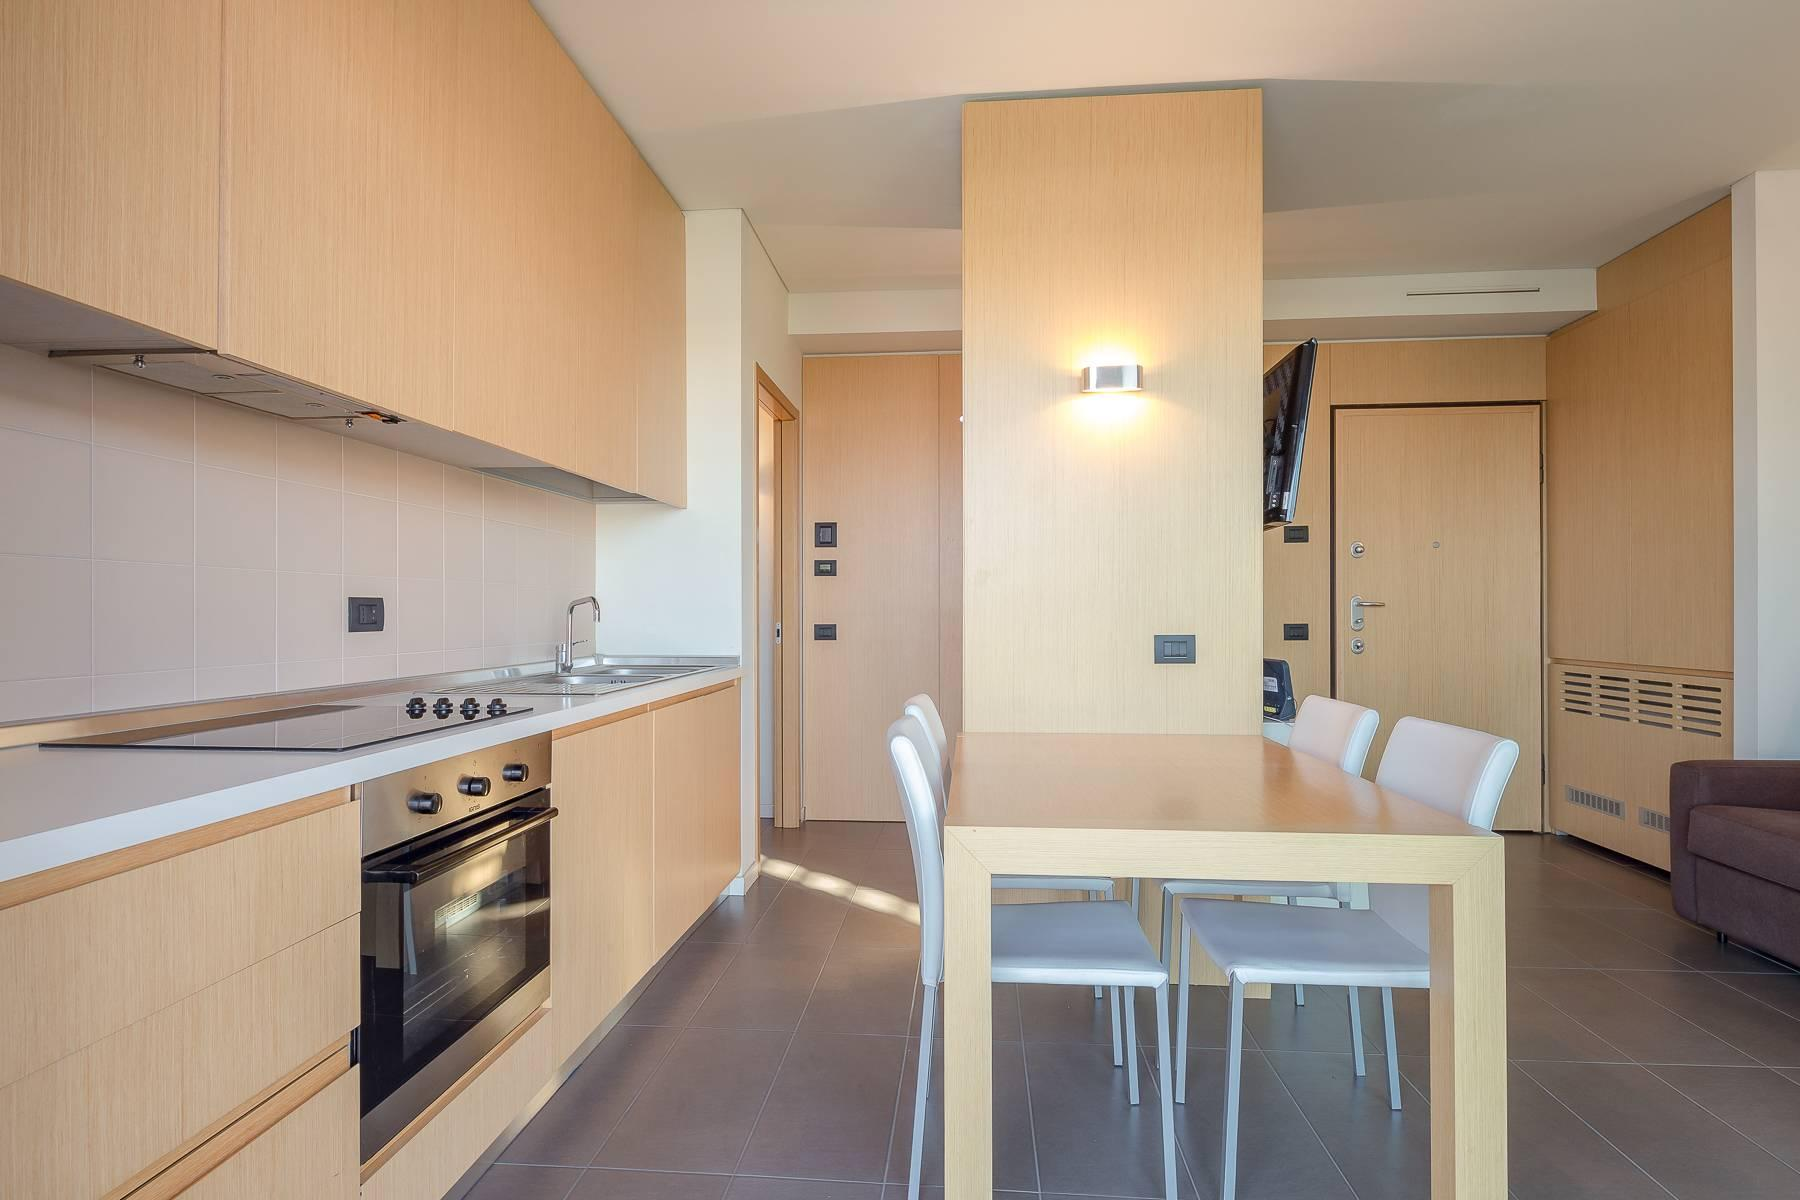 New two-room apartment with terrace in Giax Tower - 4